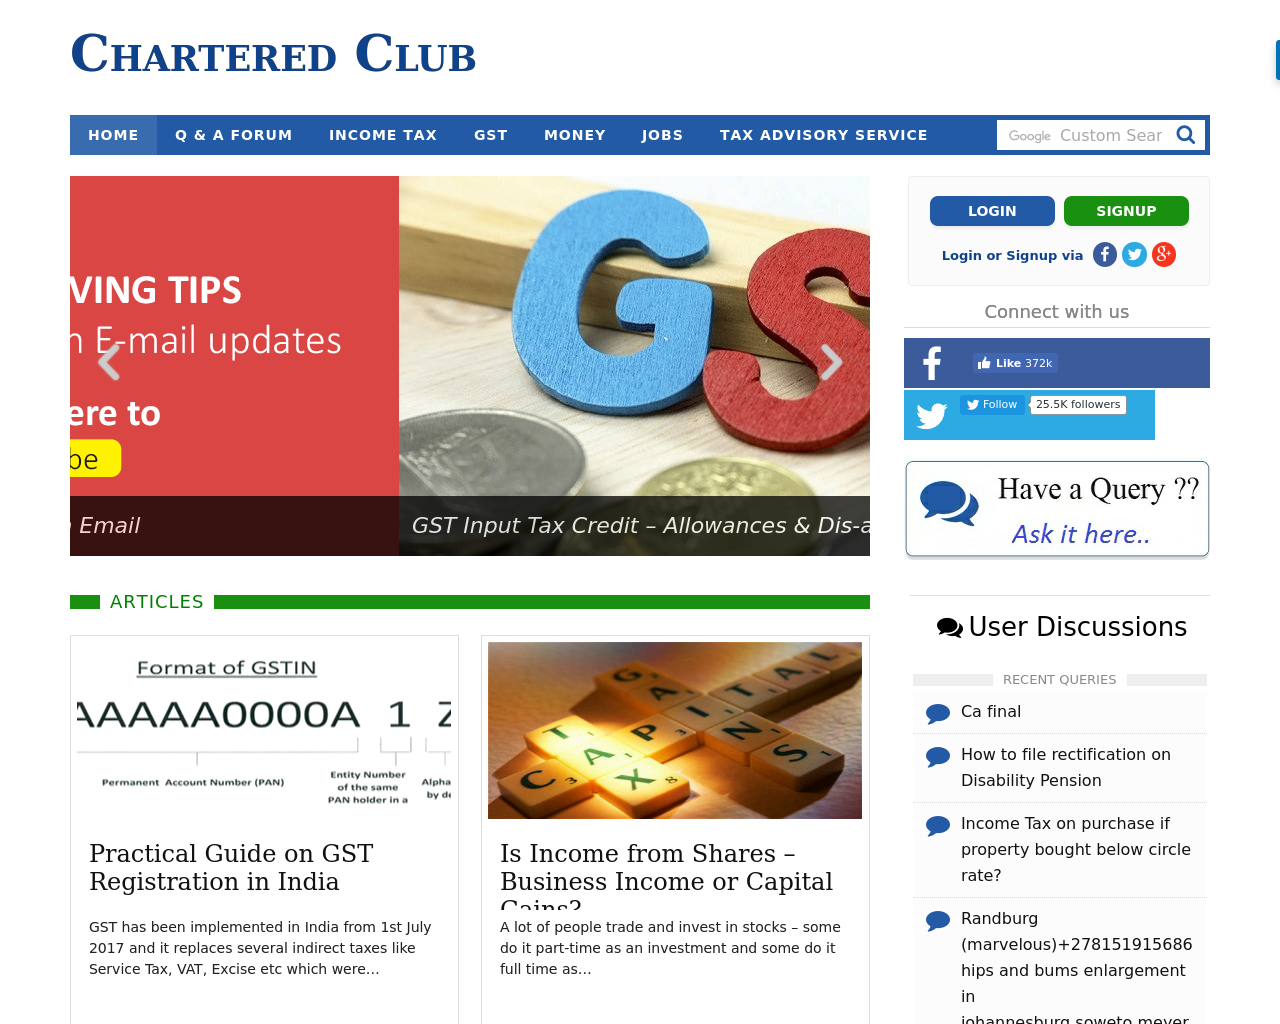 Chartered-Club-Advertising-Reviews-Pricing